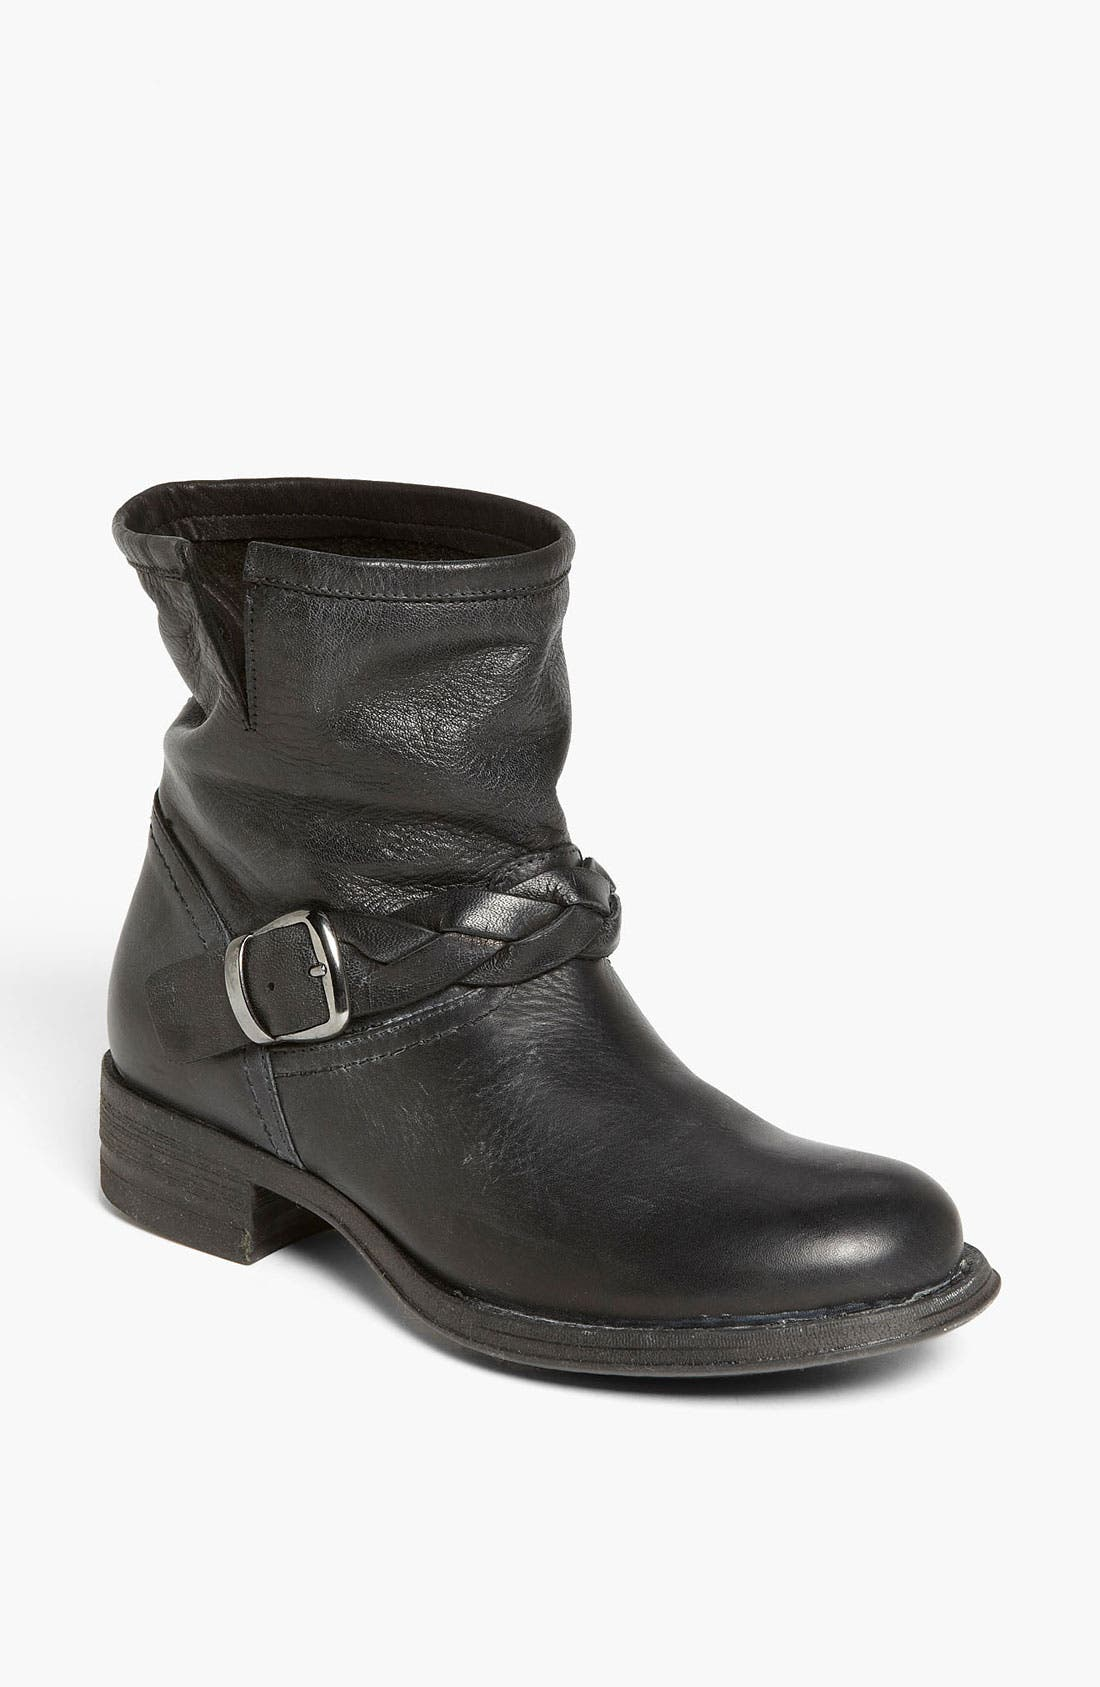 Alternate Image 1 Selected - Cordani 'Potter' Boot